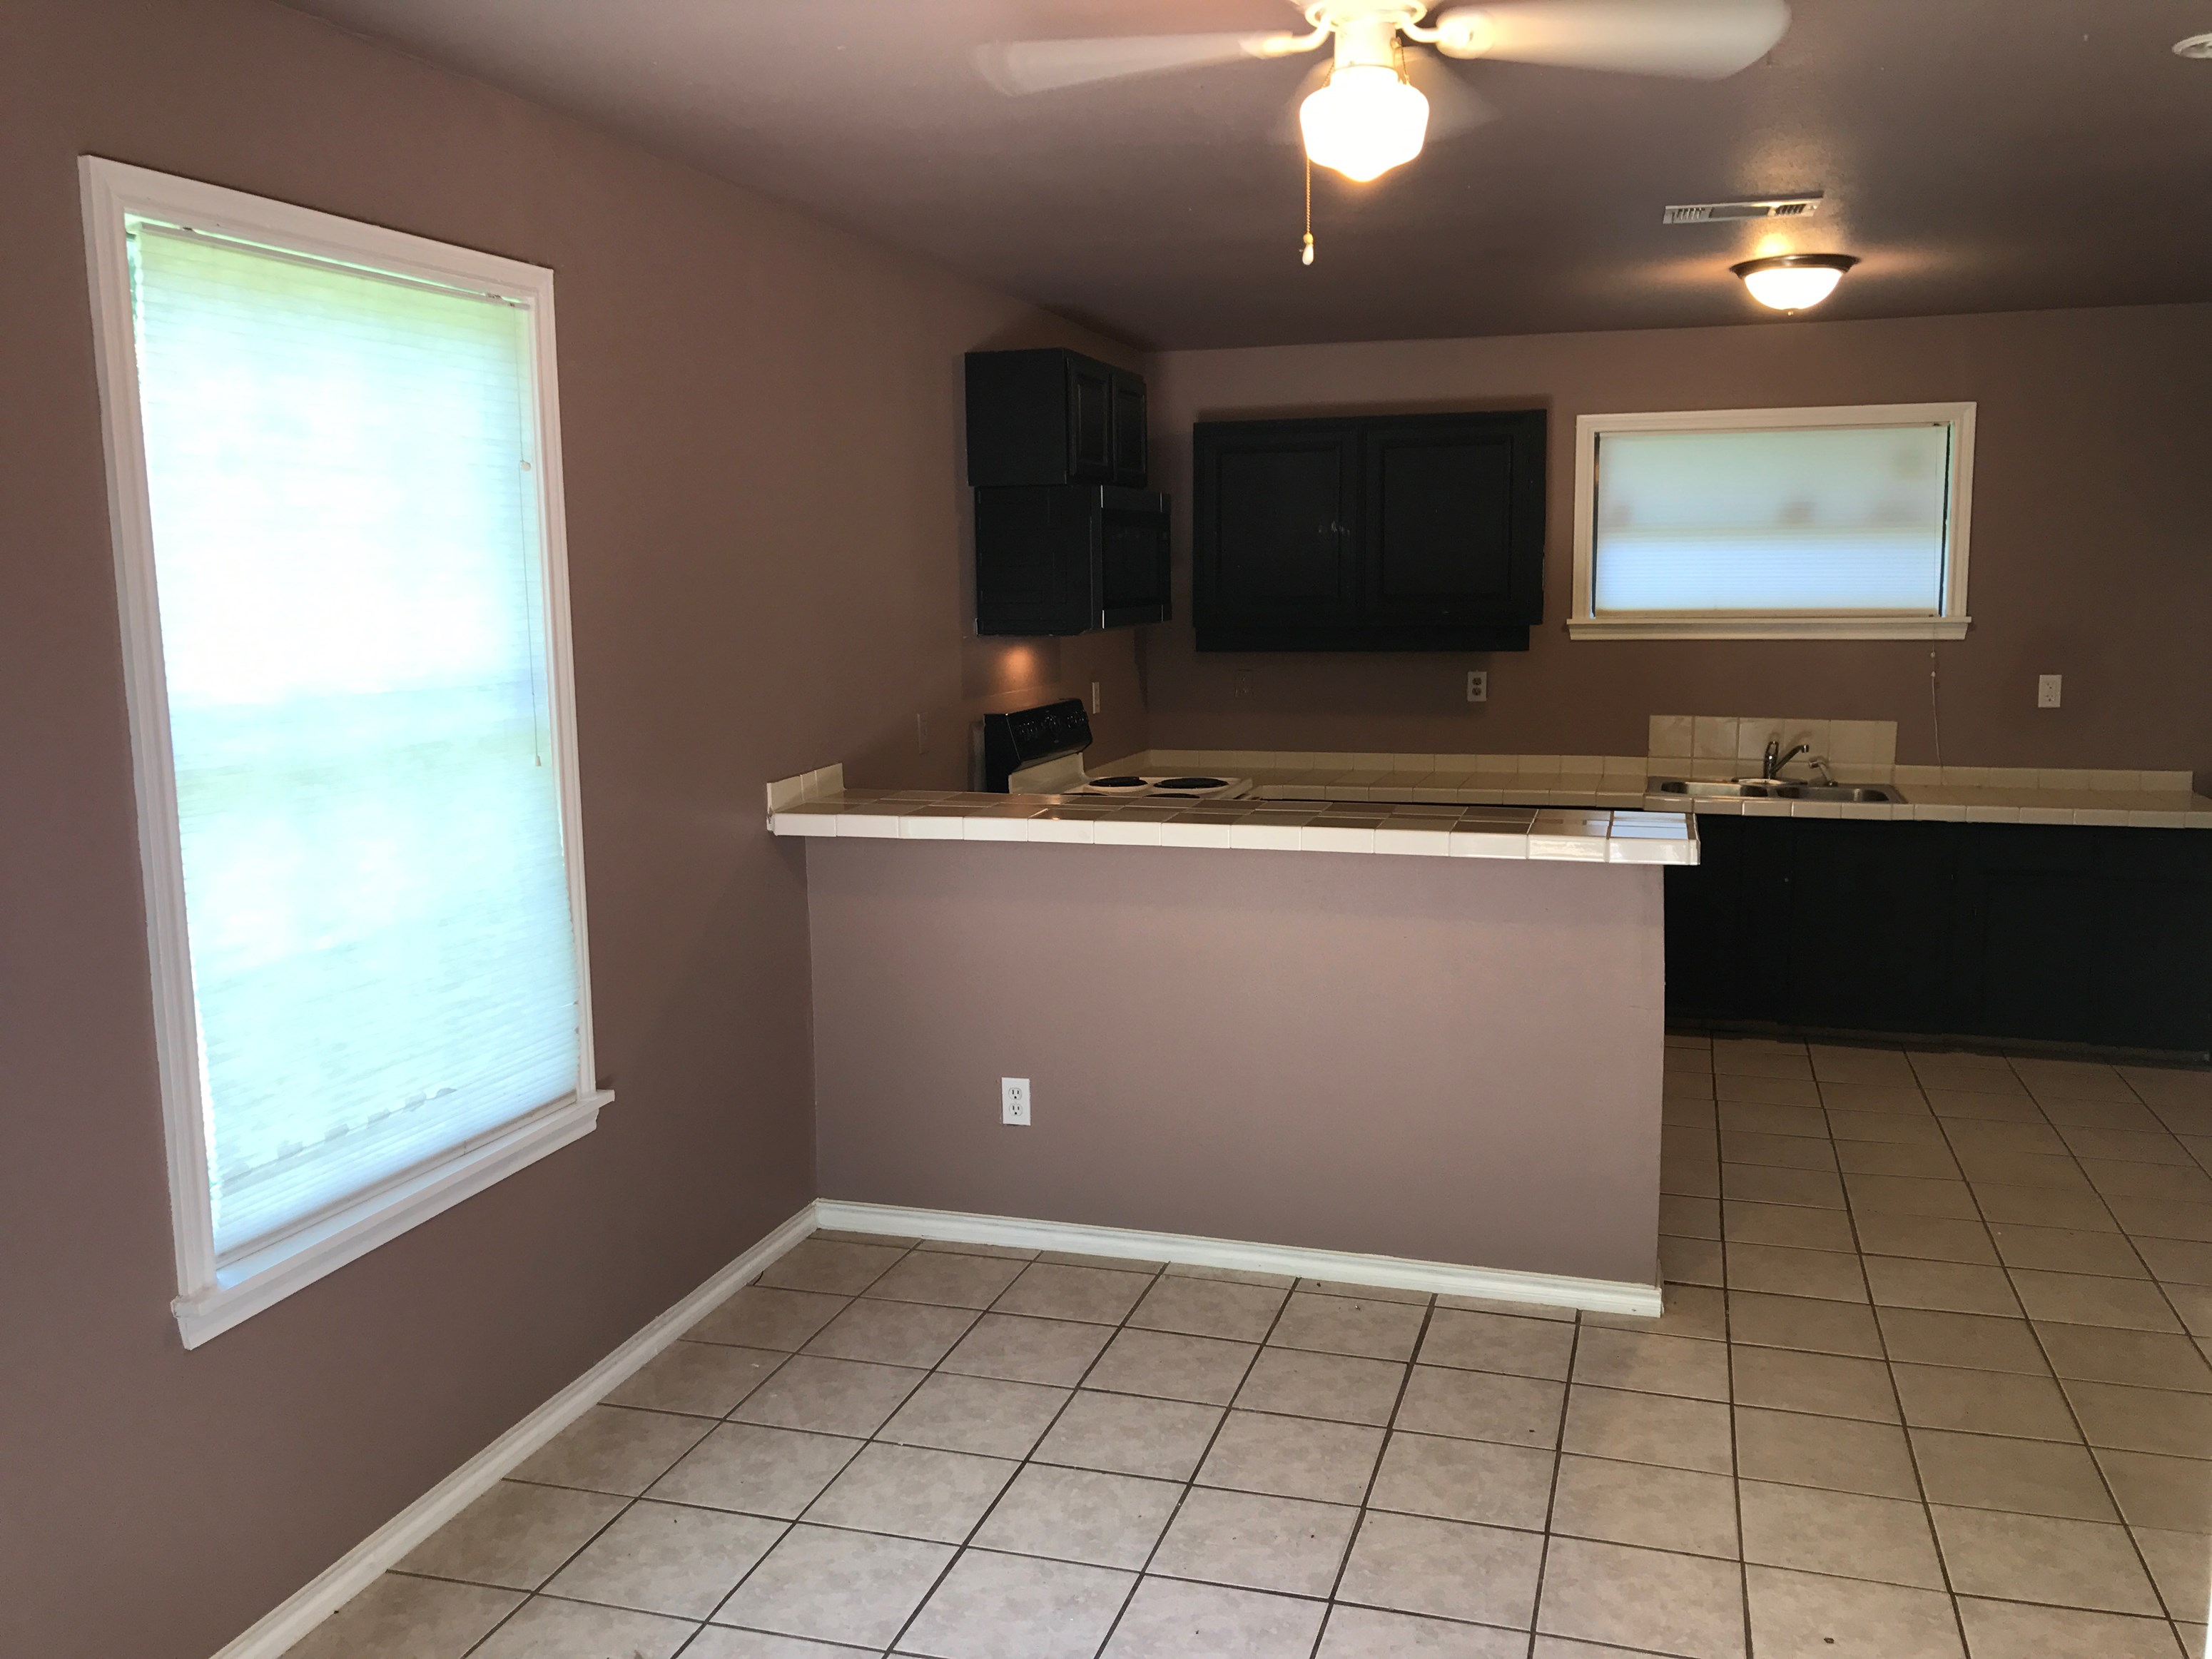 1 Bed 1 Bath Apartment In Prime South Austin Location  1 Bedroom House for Rent in Austin  TX   One Bedroom Homes for  . 1 Bedroom Rentals Austin Tx. Home Design Ideas